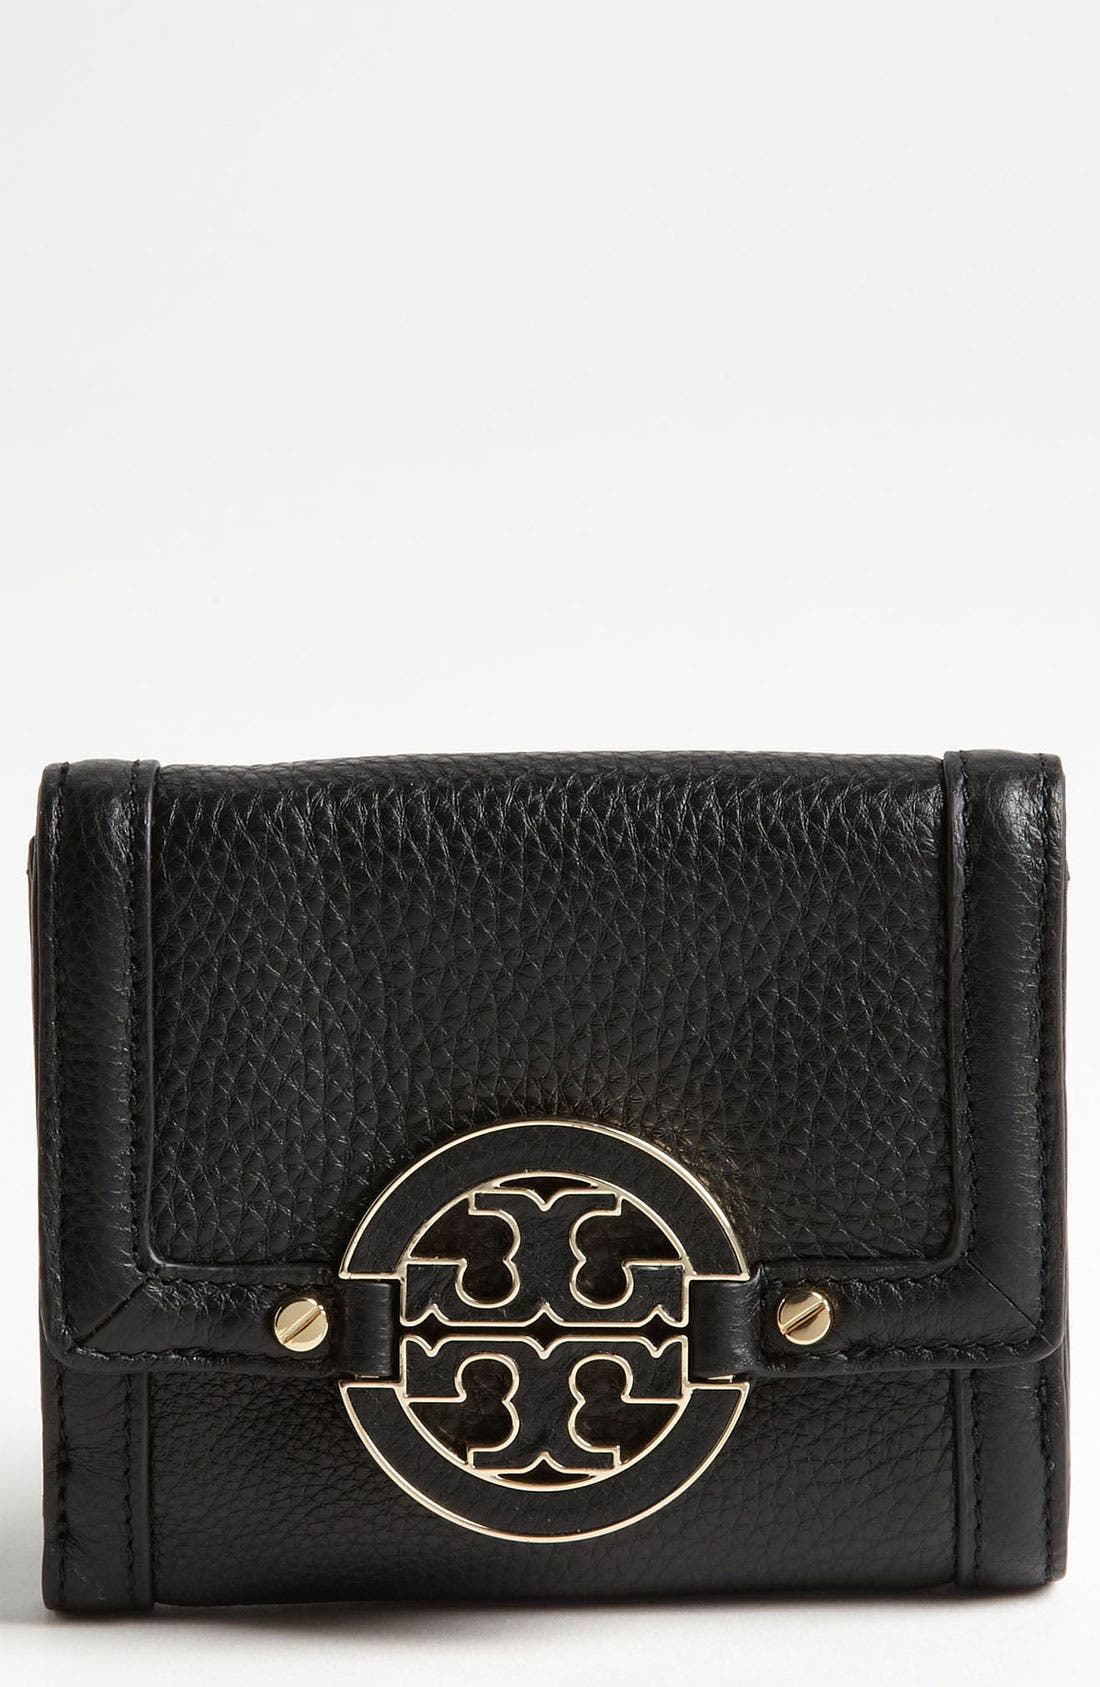 Main Image - Tory Burch 'Amanda' Double Flap French Wallet